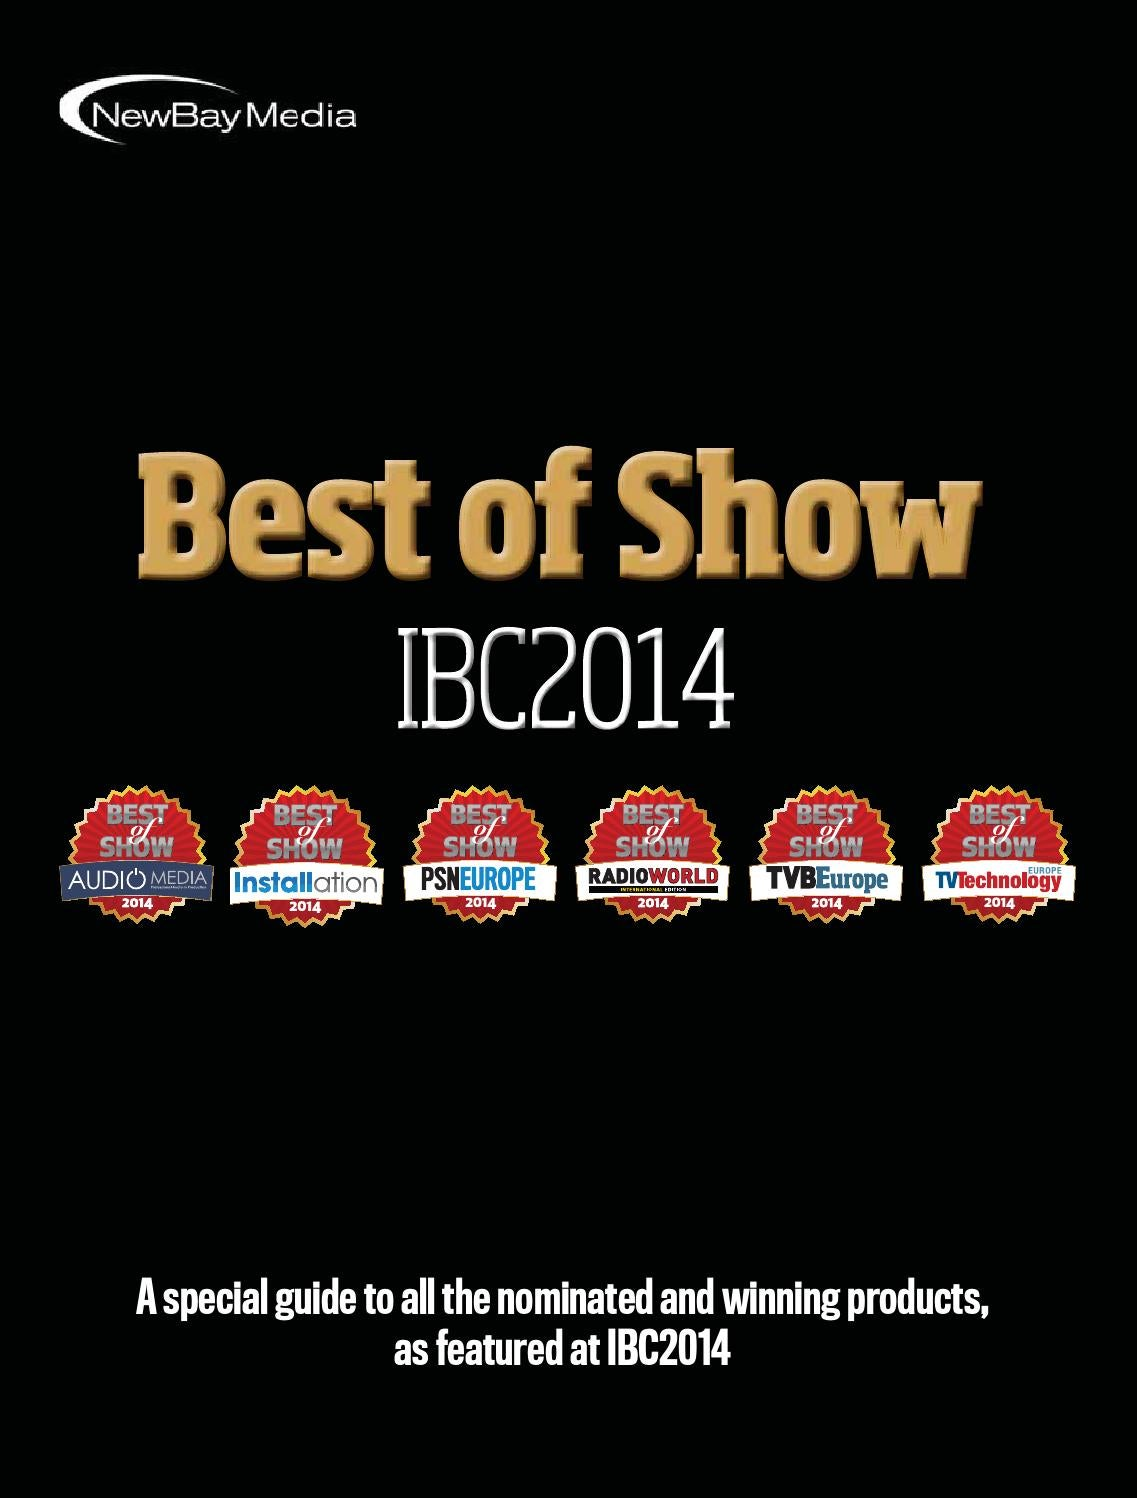 Best of show ibc2014 digital edition